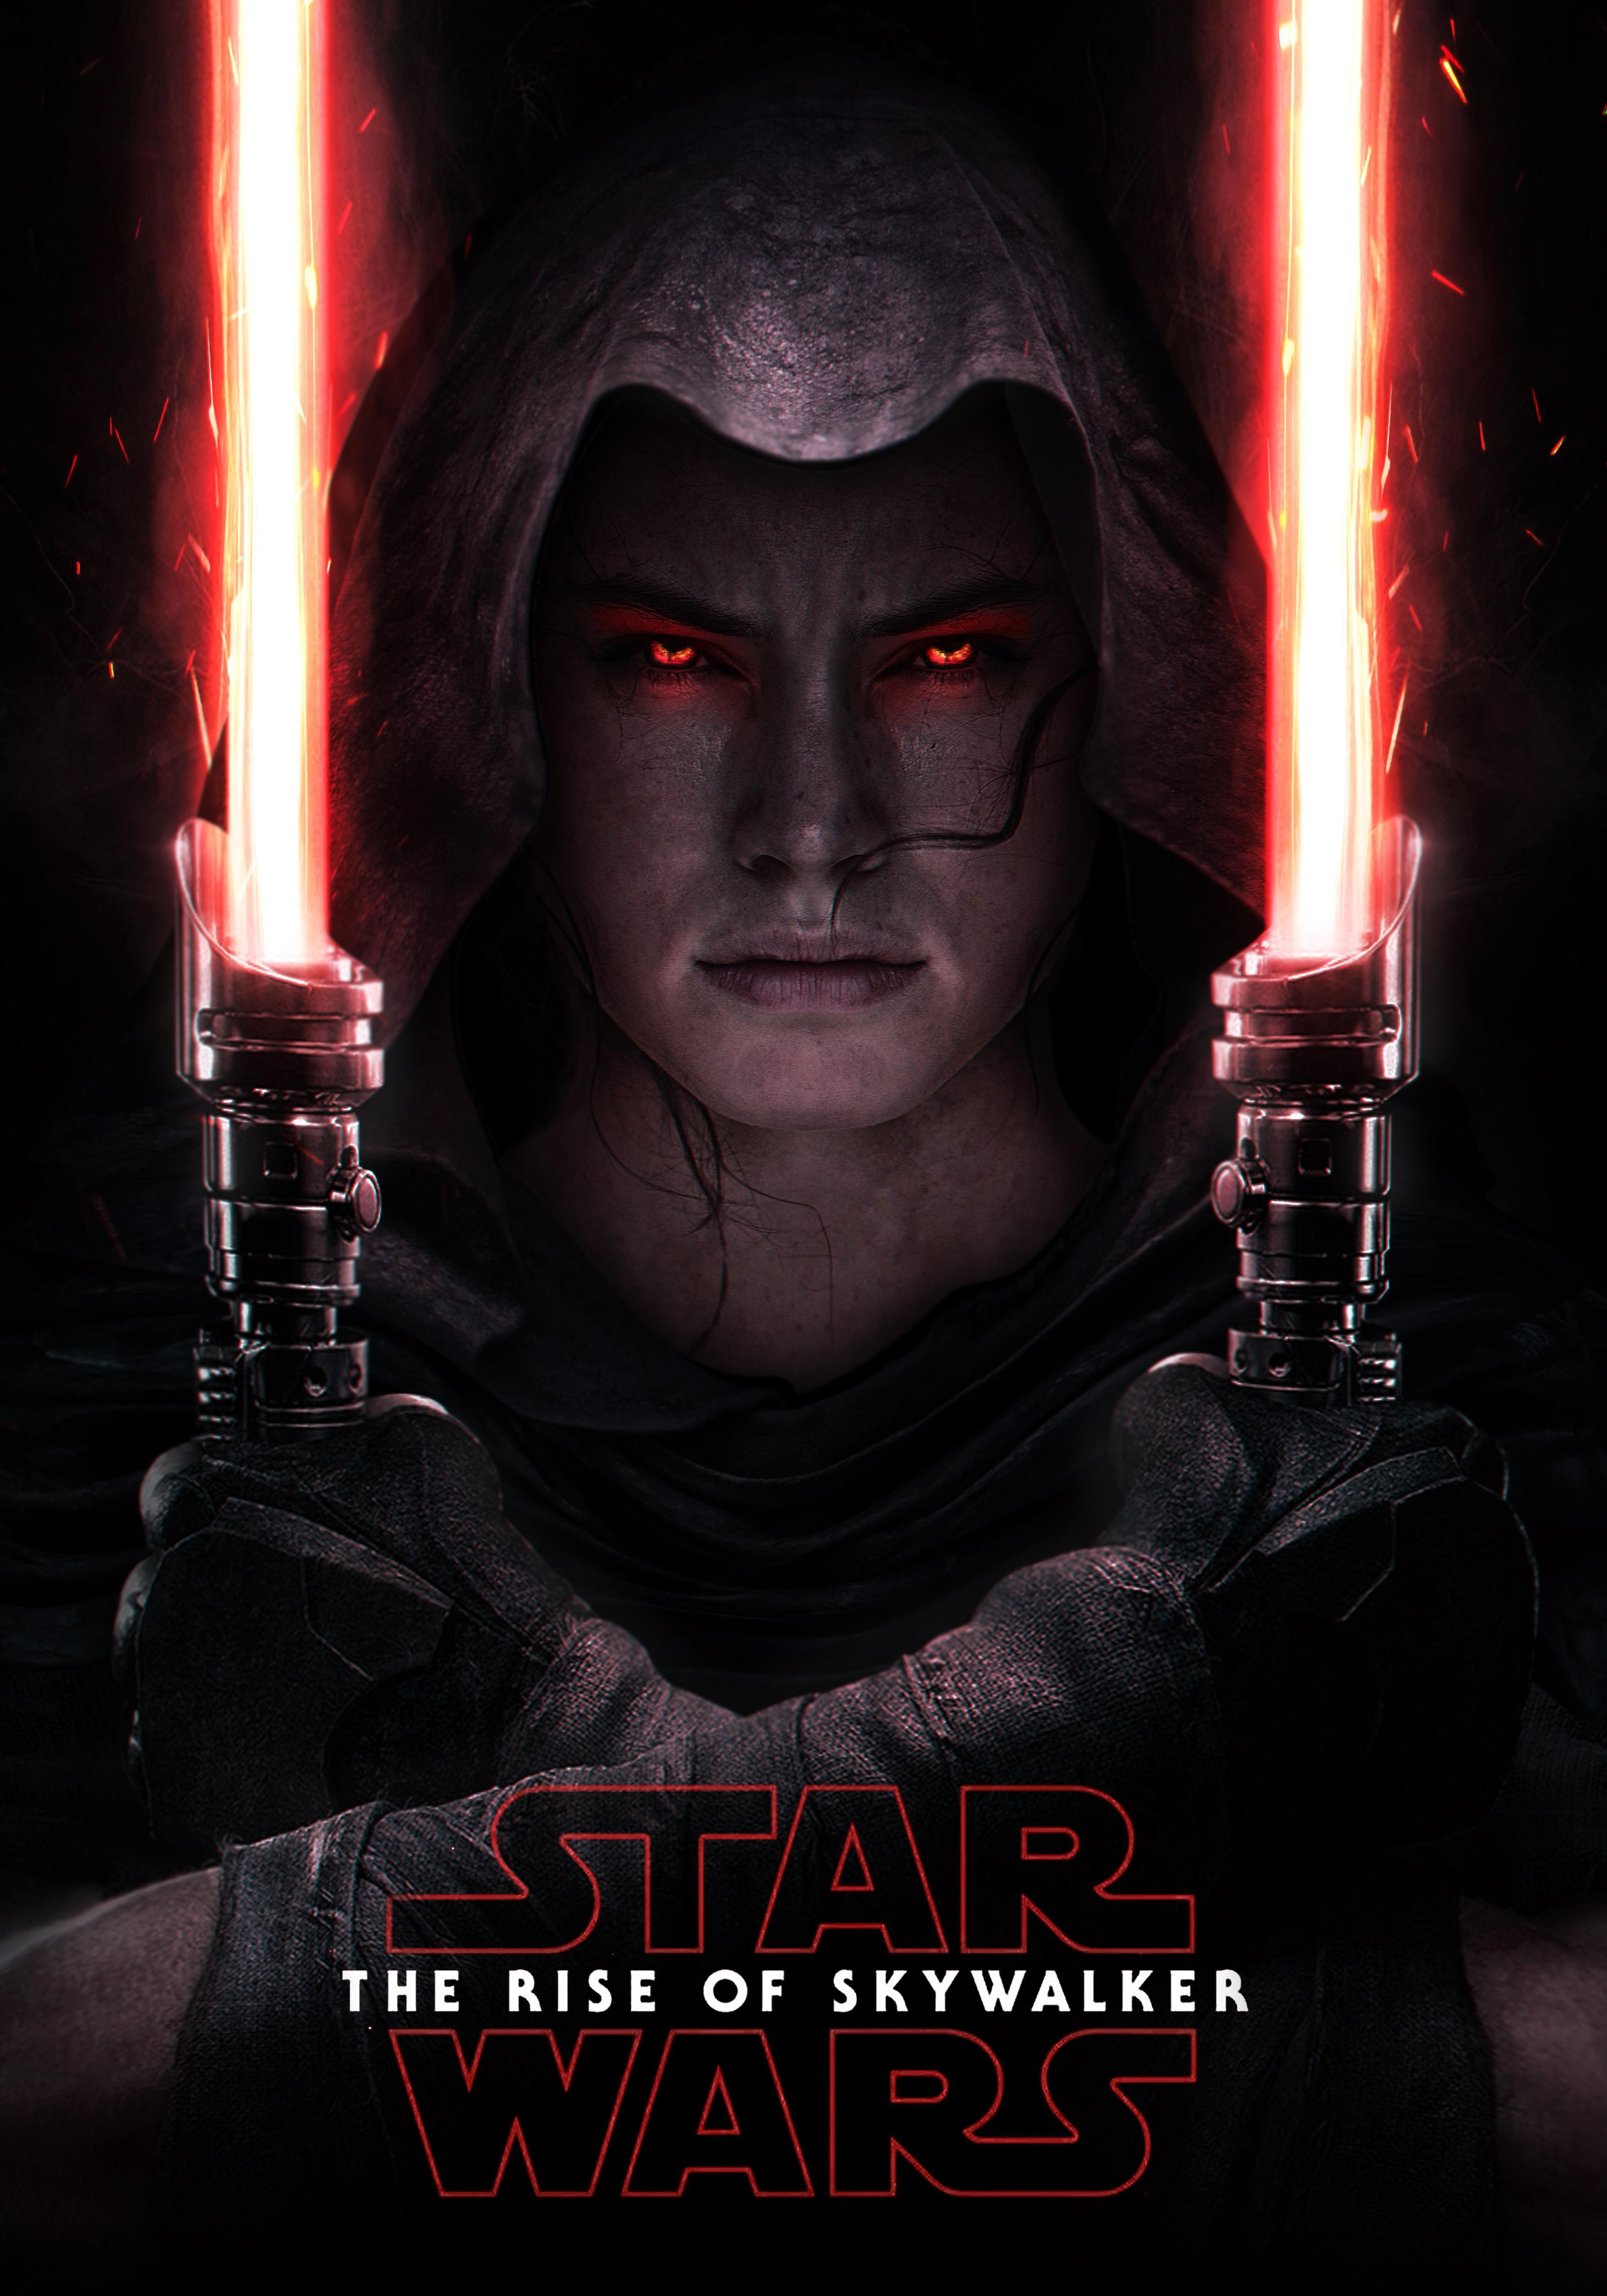 I remixed the Star Wars Force Unleashed Poster into Rey